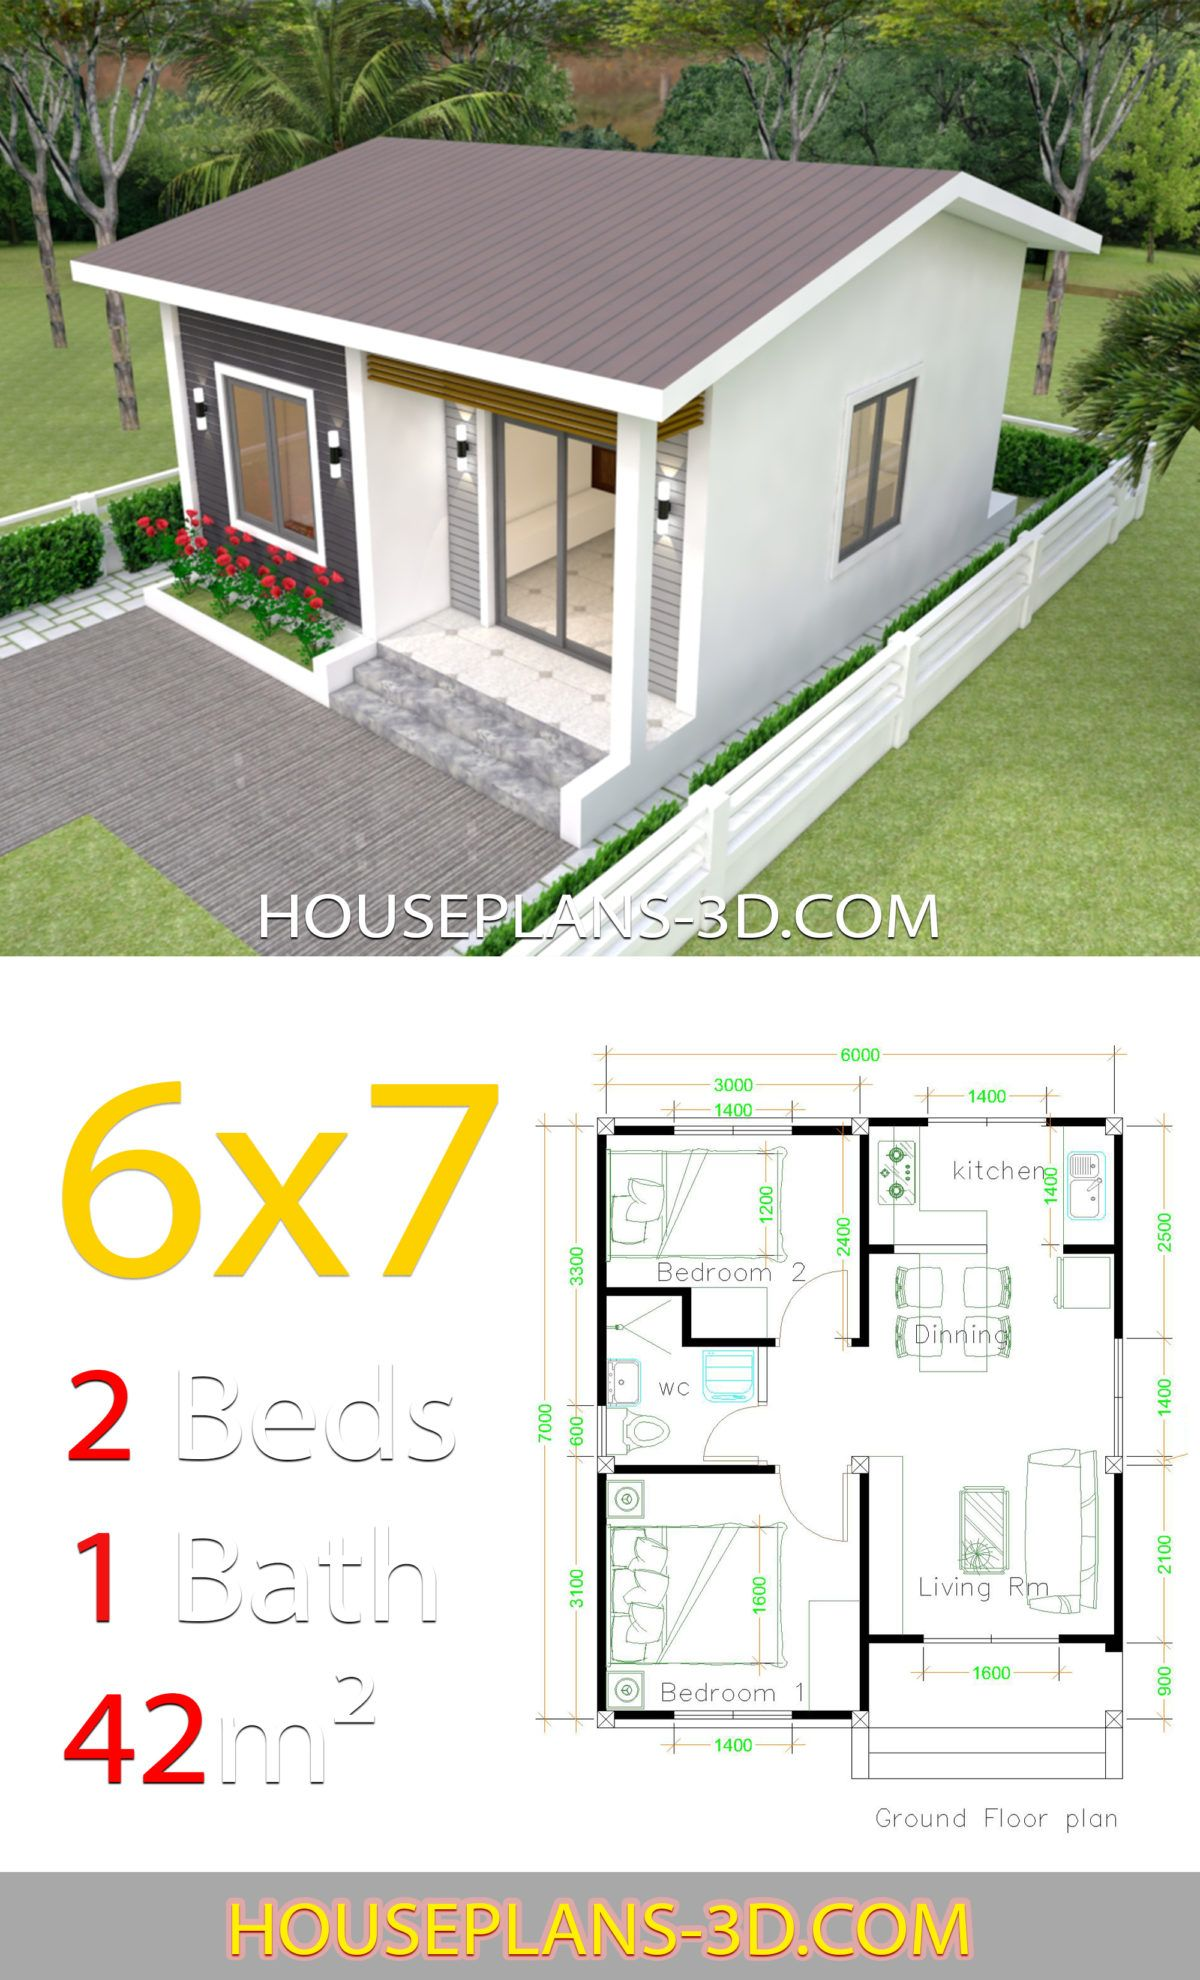 House Design 6x7 With 2 Bedrooms House Plans 3d Projetos De Casas Simples Projetos De Casas Pequenas Projetos De Casas Populares